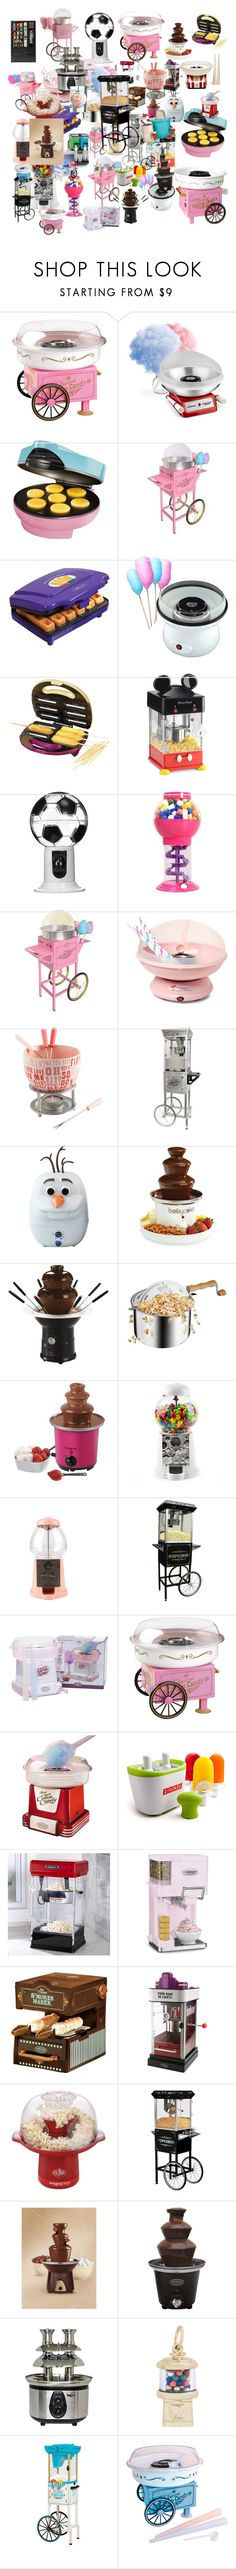 """""""Untitled #25"""" by yaarraau ❤ liked on Polyvore featuring interior, interiors, interior design, home, home decor, interior decorating, Cotton Candy, Nostalgia Electrics, Cuisinart and Vintage Collection"""